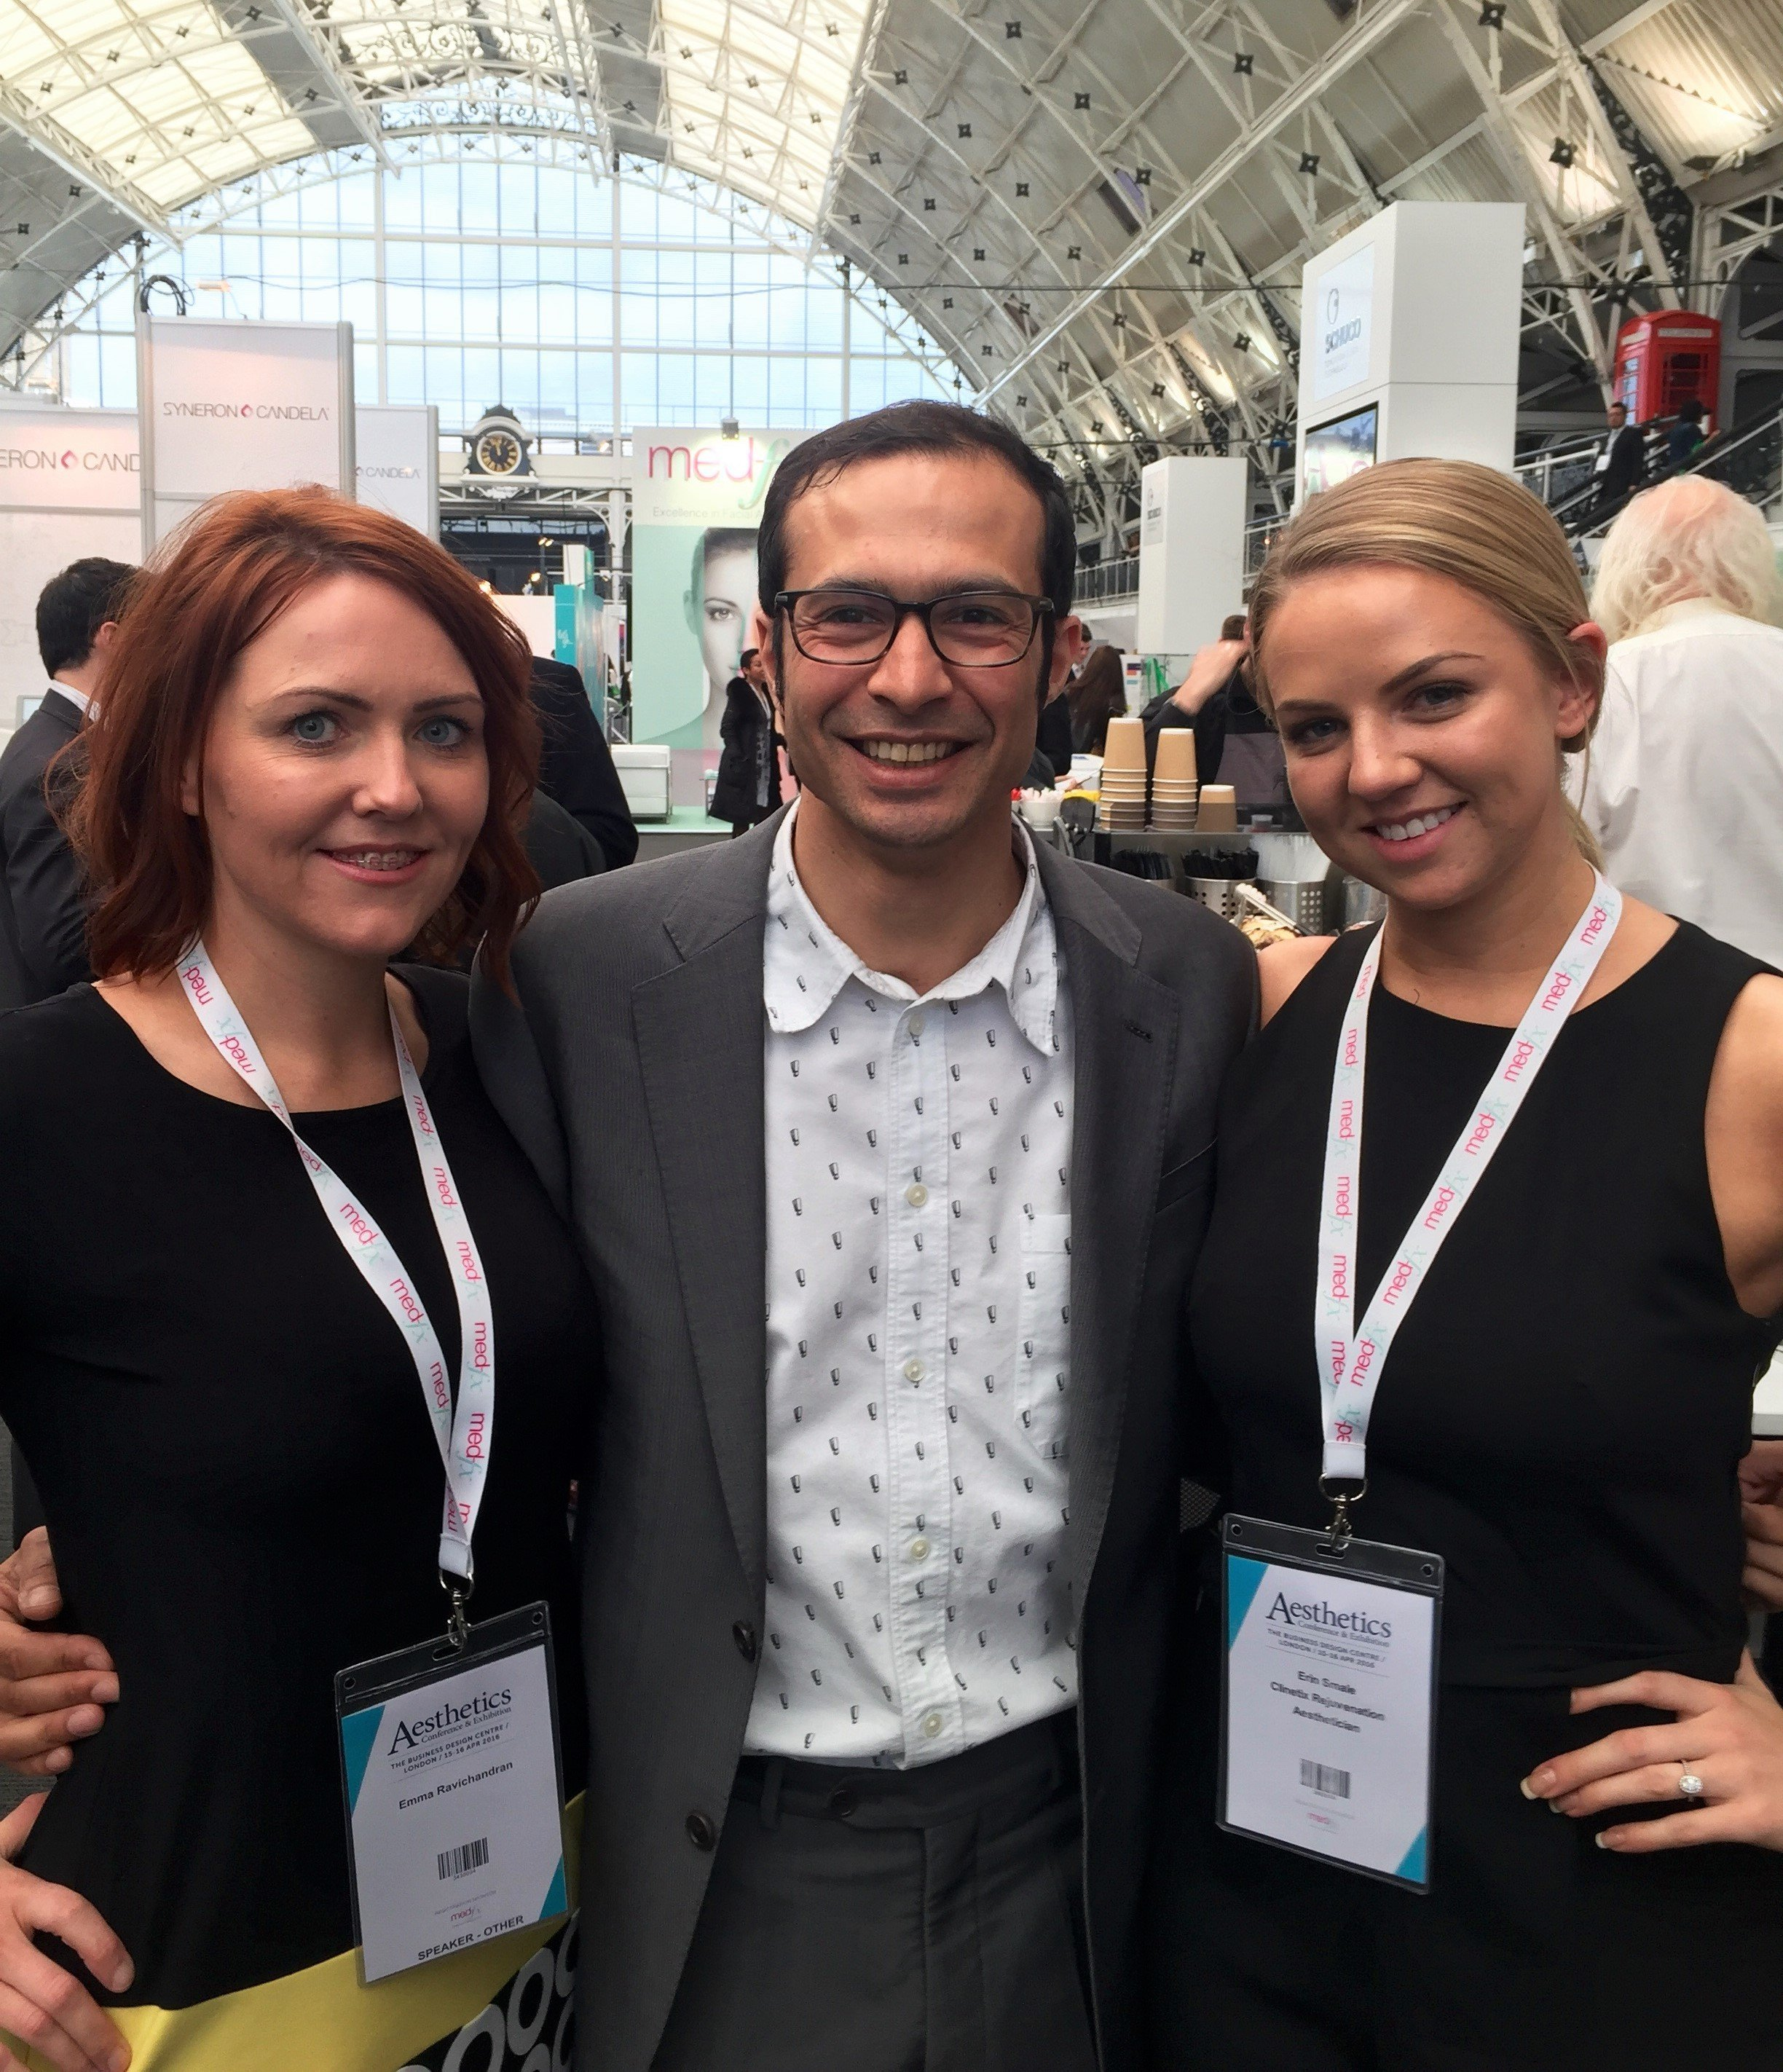 Clinetix Directors Drs Emma and Simon Ravichandran and Clinetix Glasgow West End Therapist Erin at ACE 2016 - Aesthetic Conference and Exhibition 2016